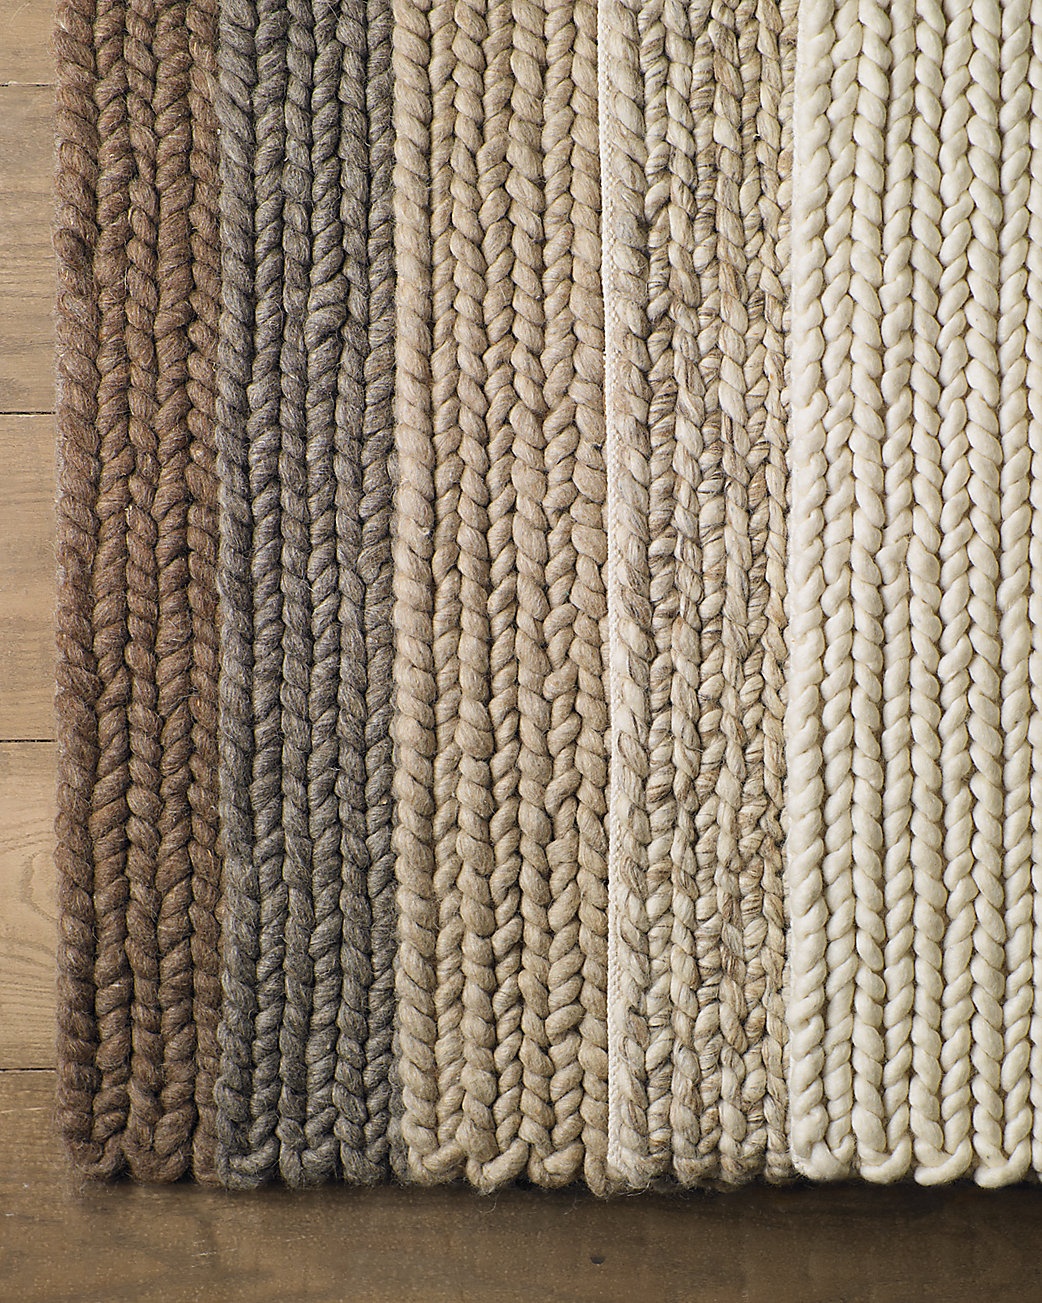 Chunky Braided Wool Rug